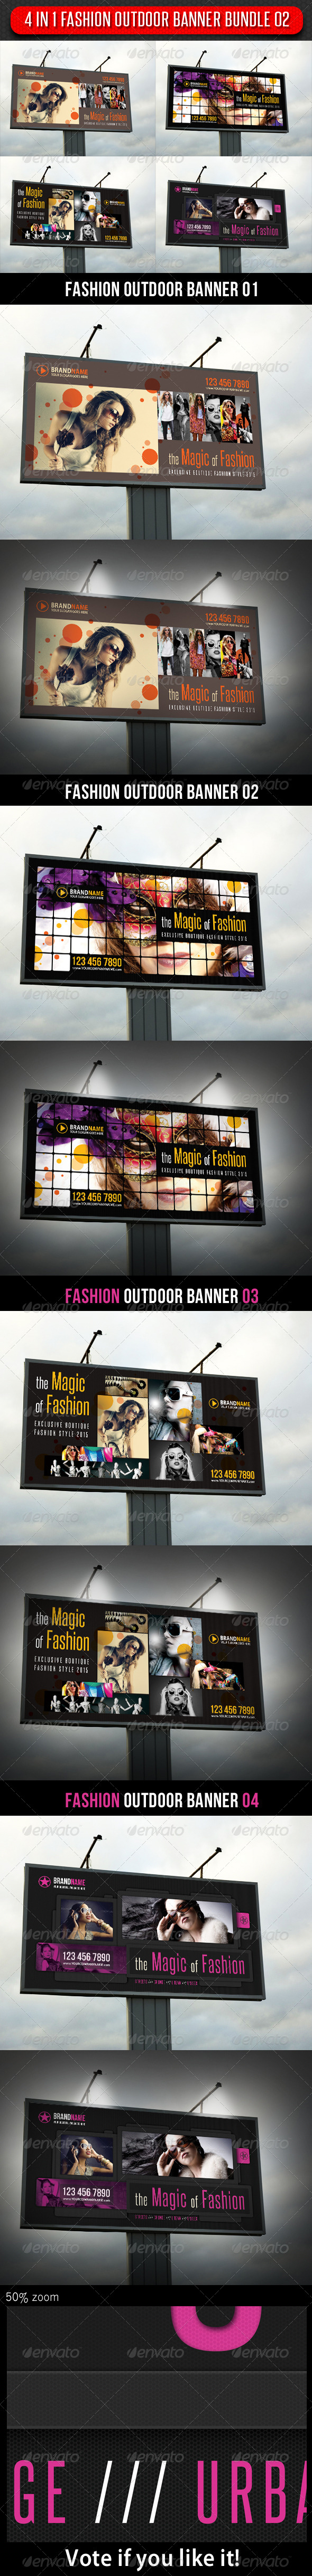 GraphicRiver 4 in 1 Fashion Outdoor Banner Bundle 02 6013746